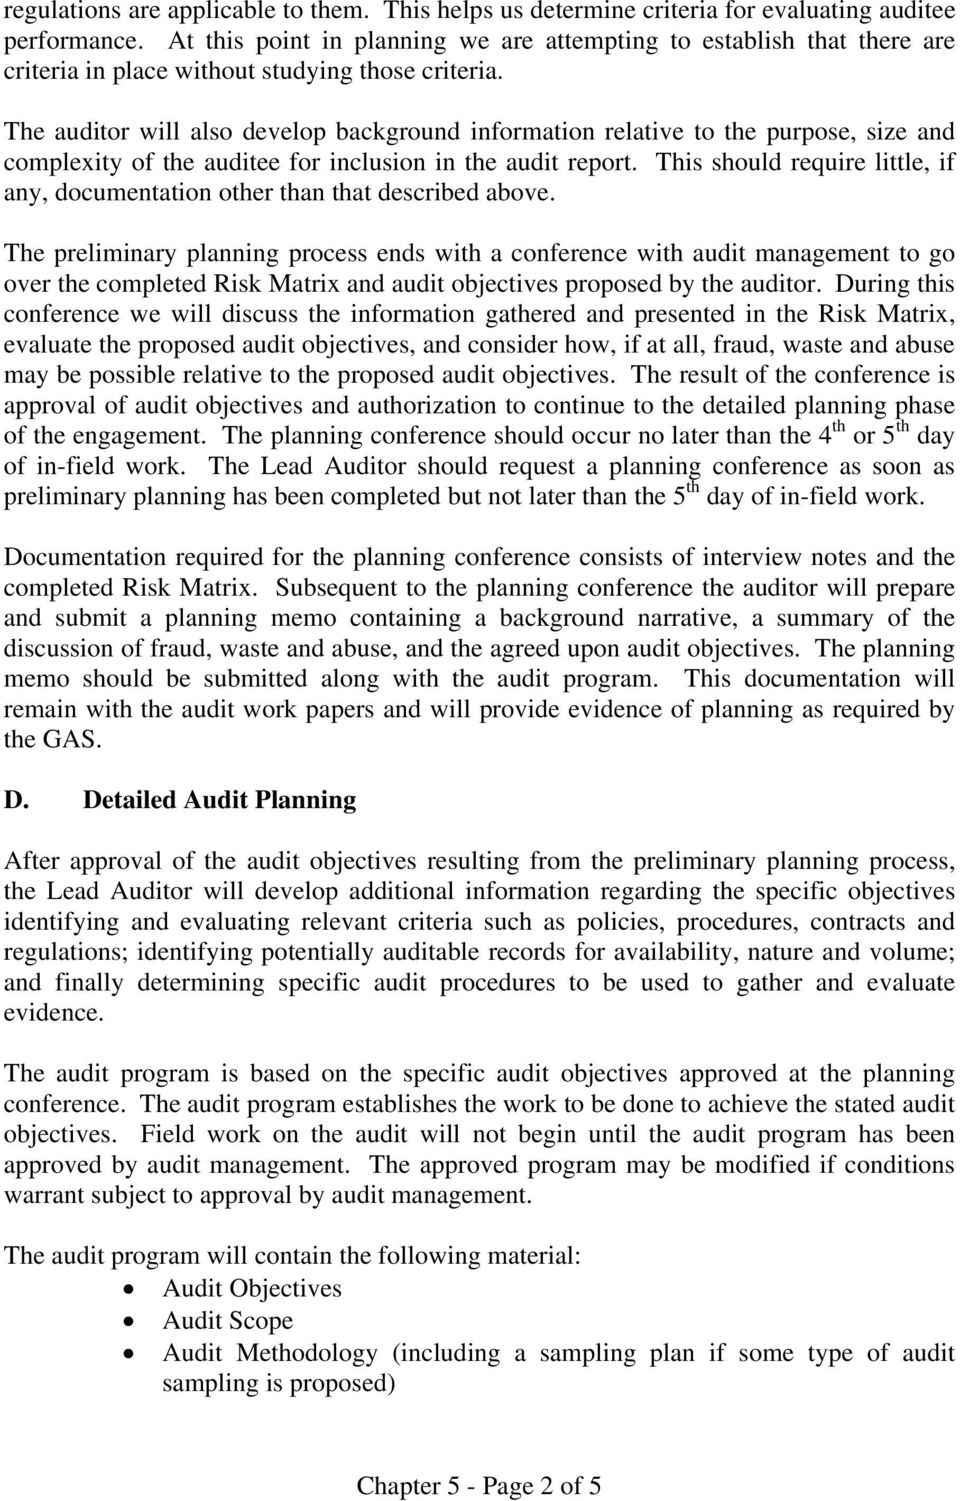 Chapter 5  Planning the Audit Engagement - PDF